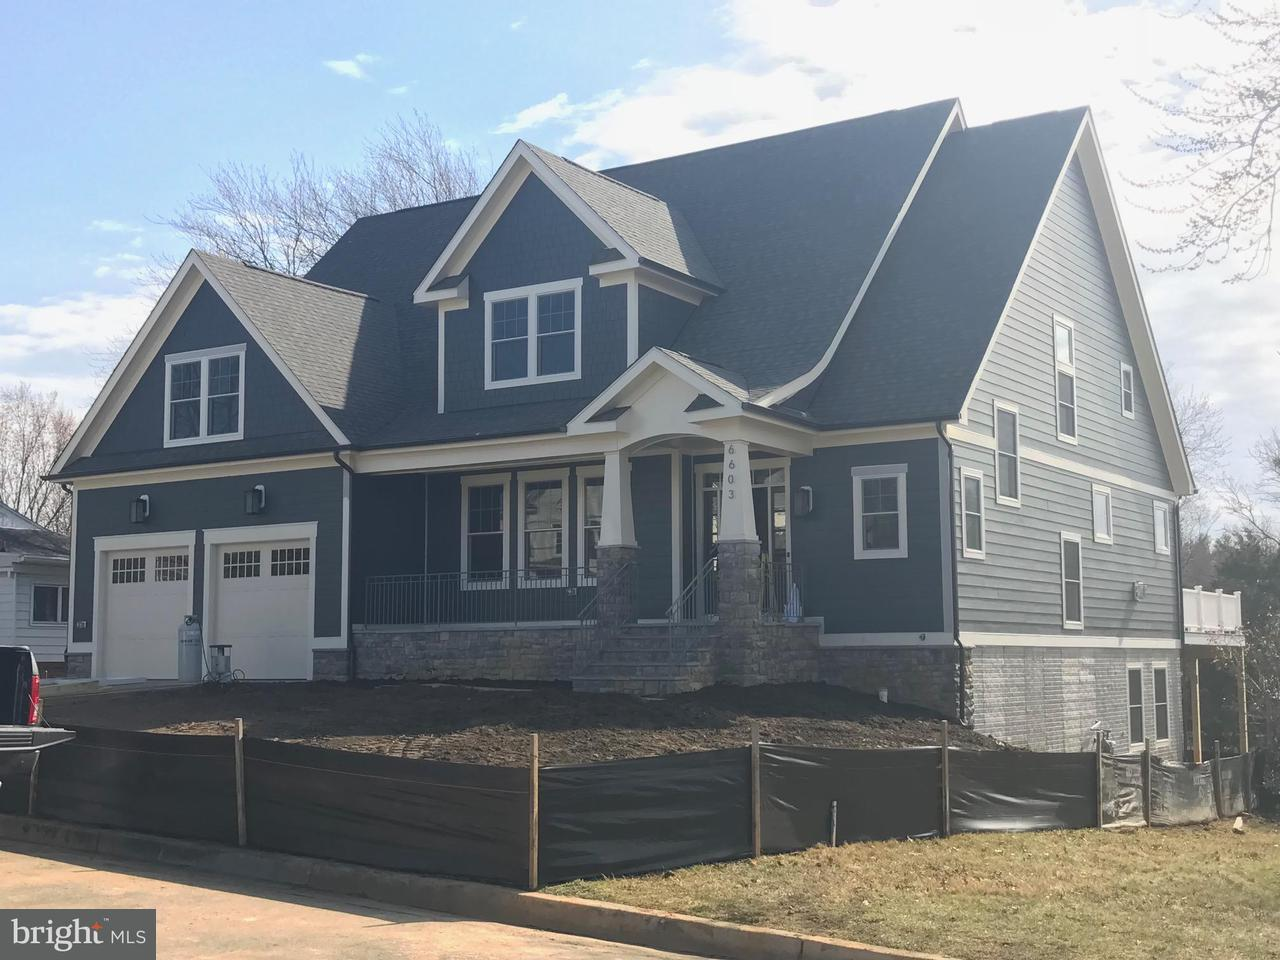 Single Family Home for Sale at 6603 Ivy Hill Drive 6603 Ivy Hill Drive McLean, Virginia 22101 United States